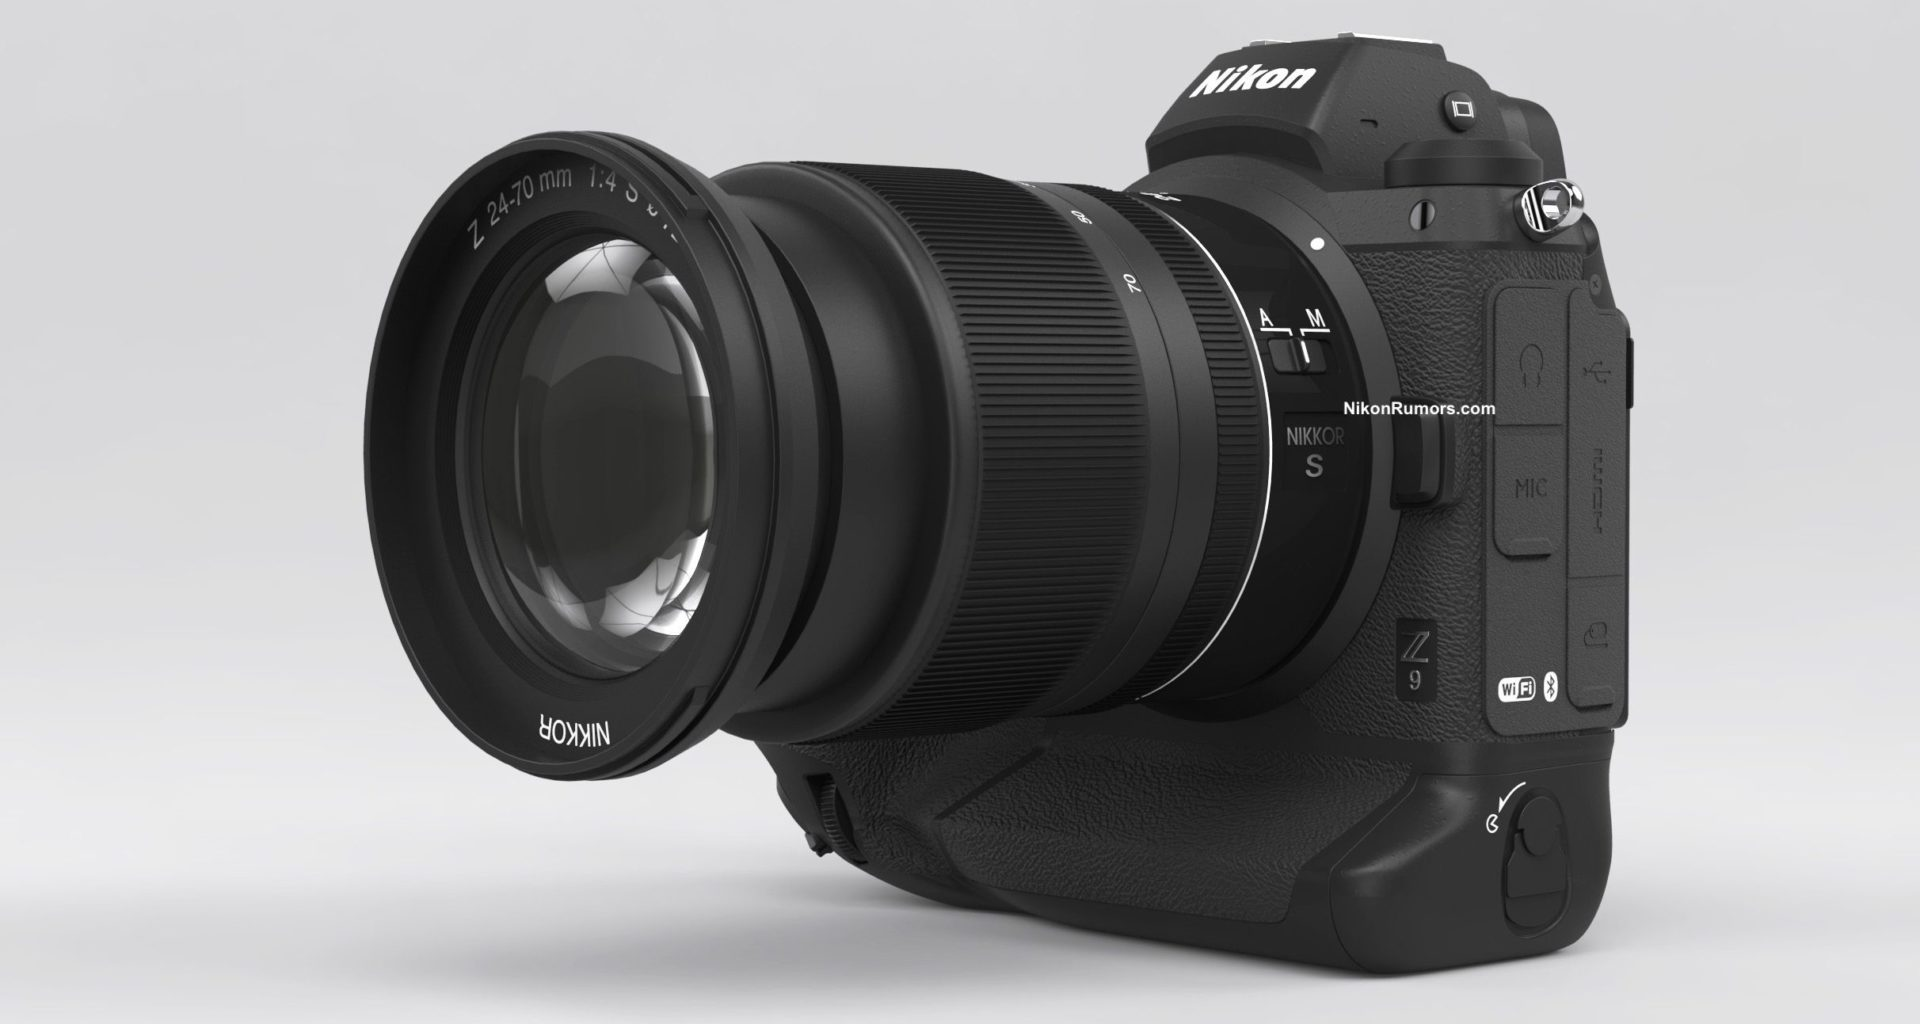 Nikon announced Nikon Z9 flagship mirrorless camera will be launched this year